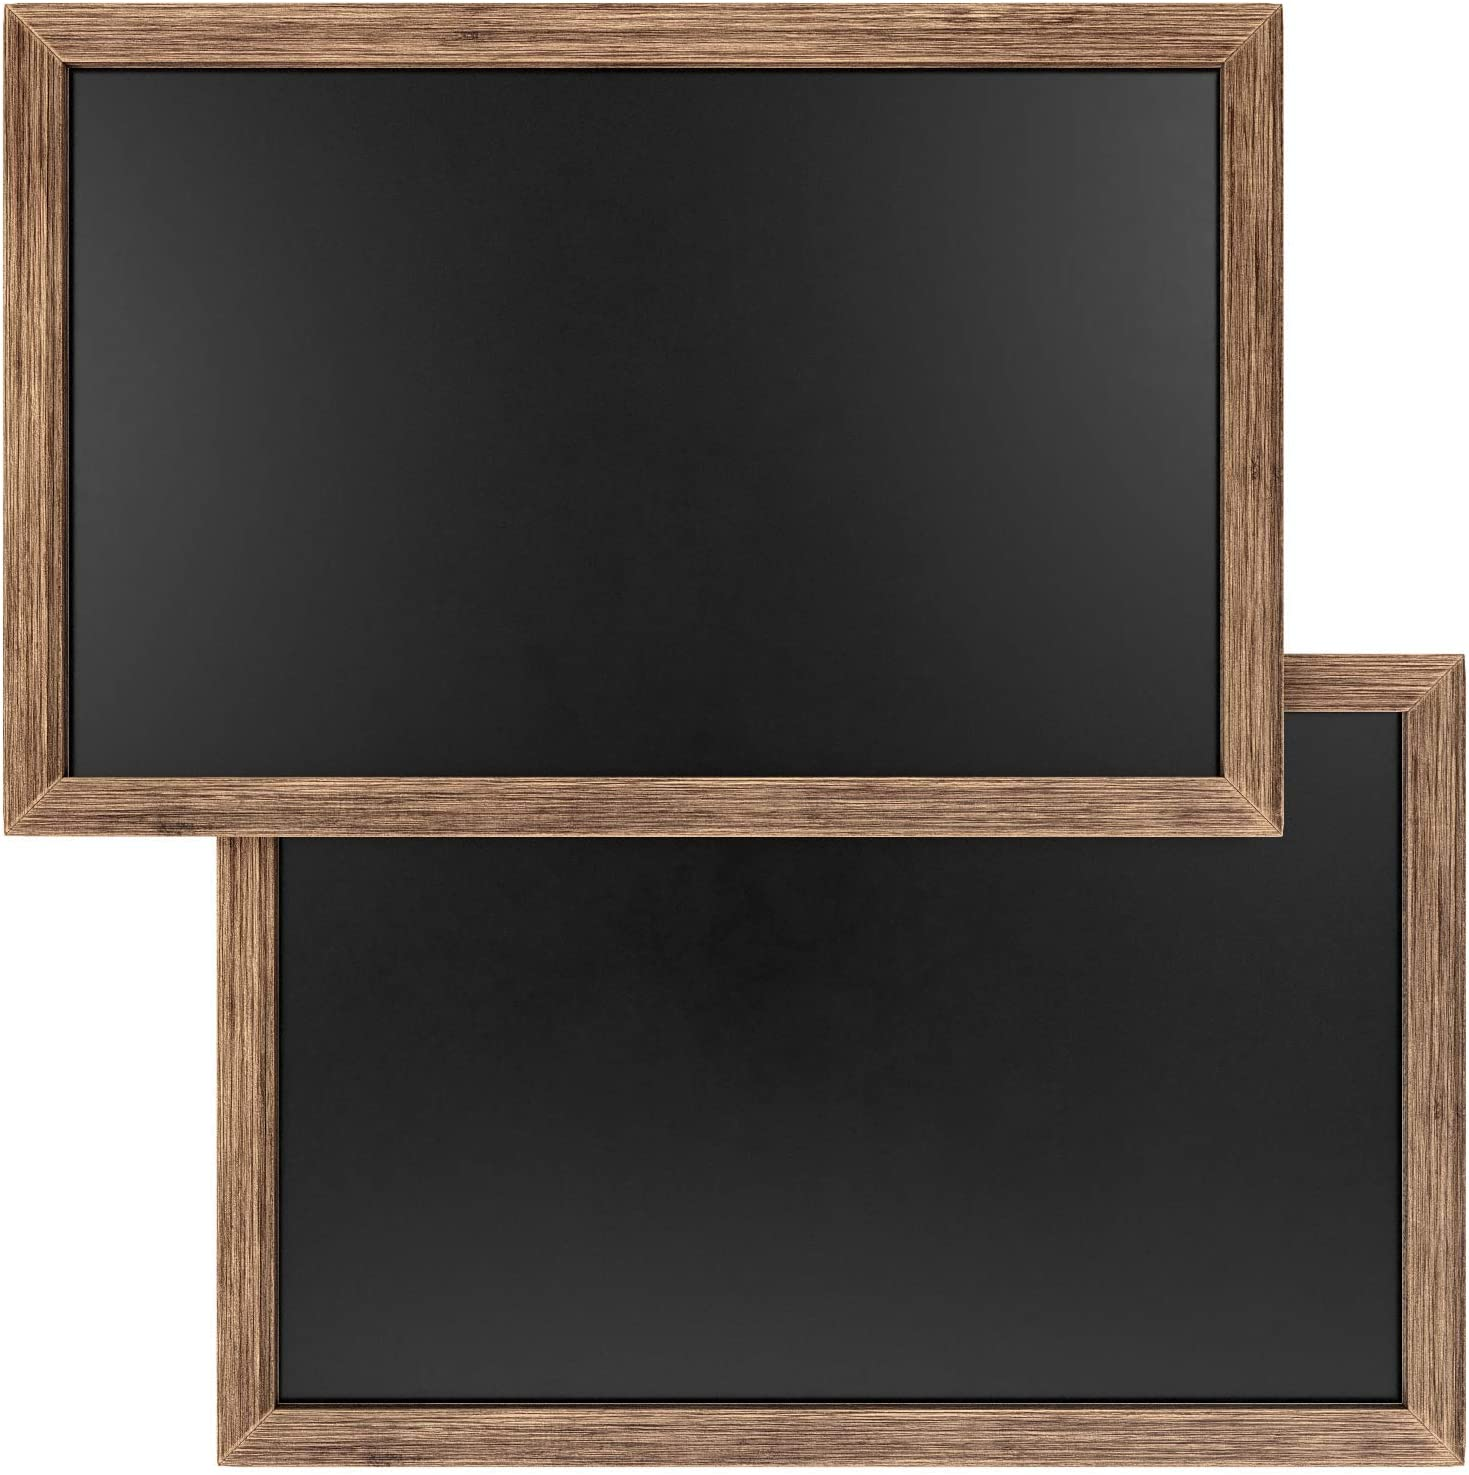 Arteza Small Magnetic Chalkboard for Walls, 11x17 Inches, 2-Pack, Easy to Mount, Rustic Decorative Black Chalk Board for Kitchens, Cafes, Stores, Weddings & Special Events : Office Products